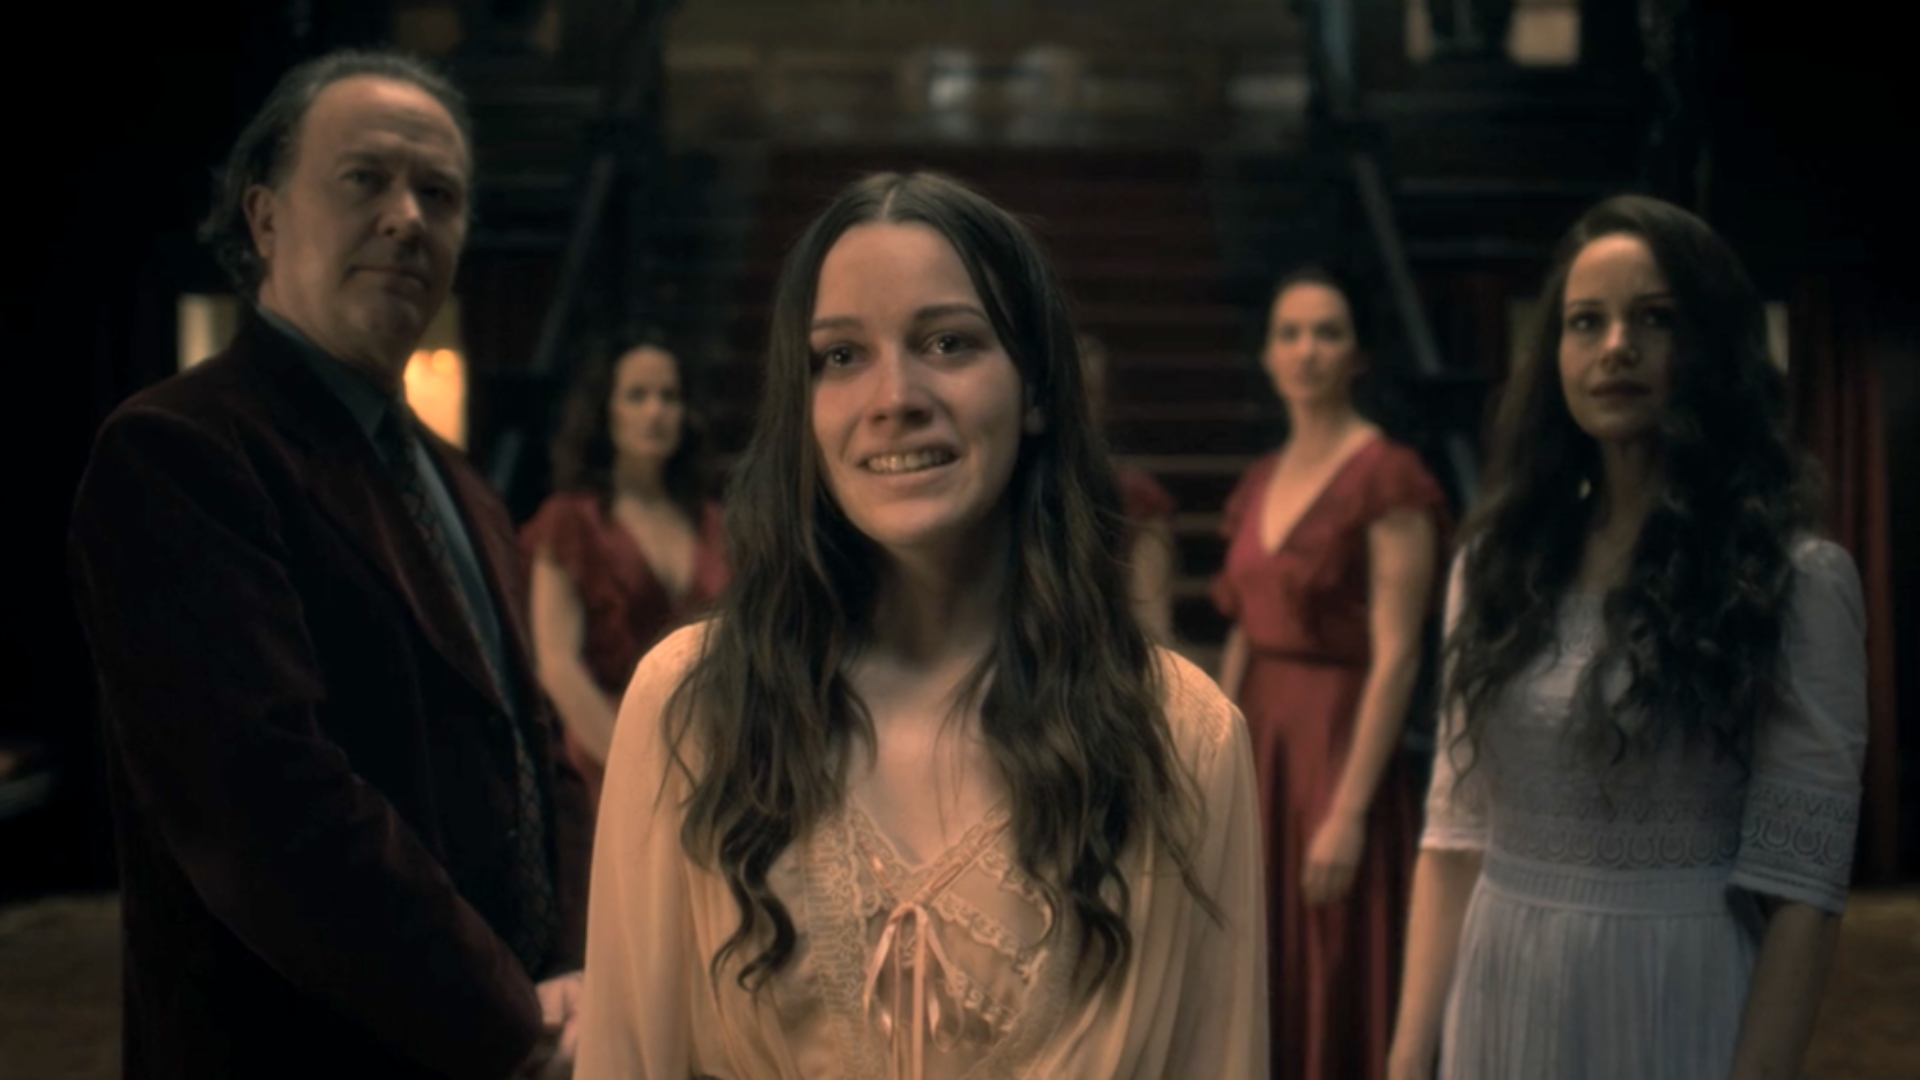 The Haunting Of Hill House Season 2 Cast To Include Original Stars Sheknows